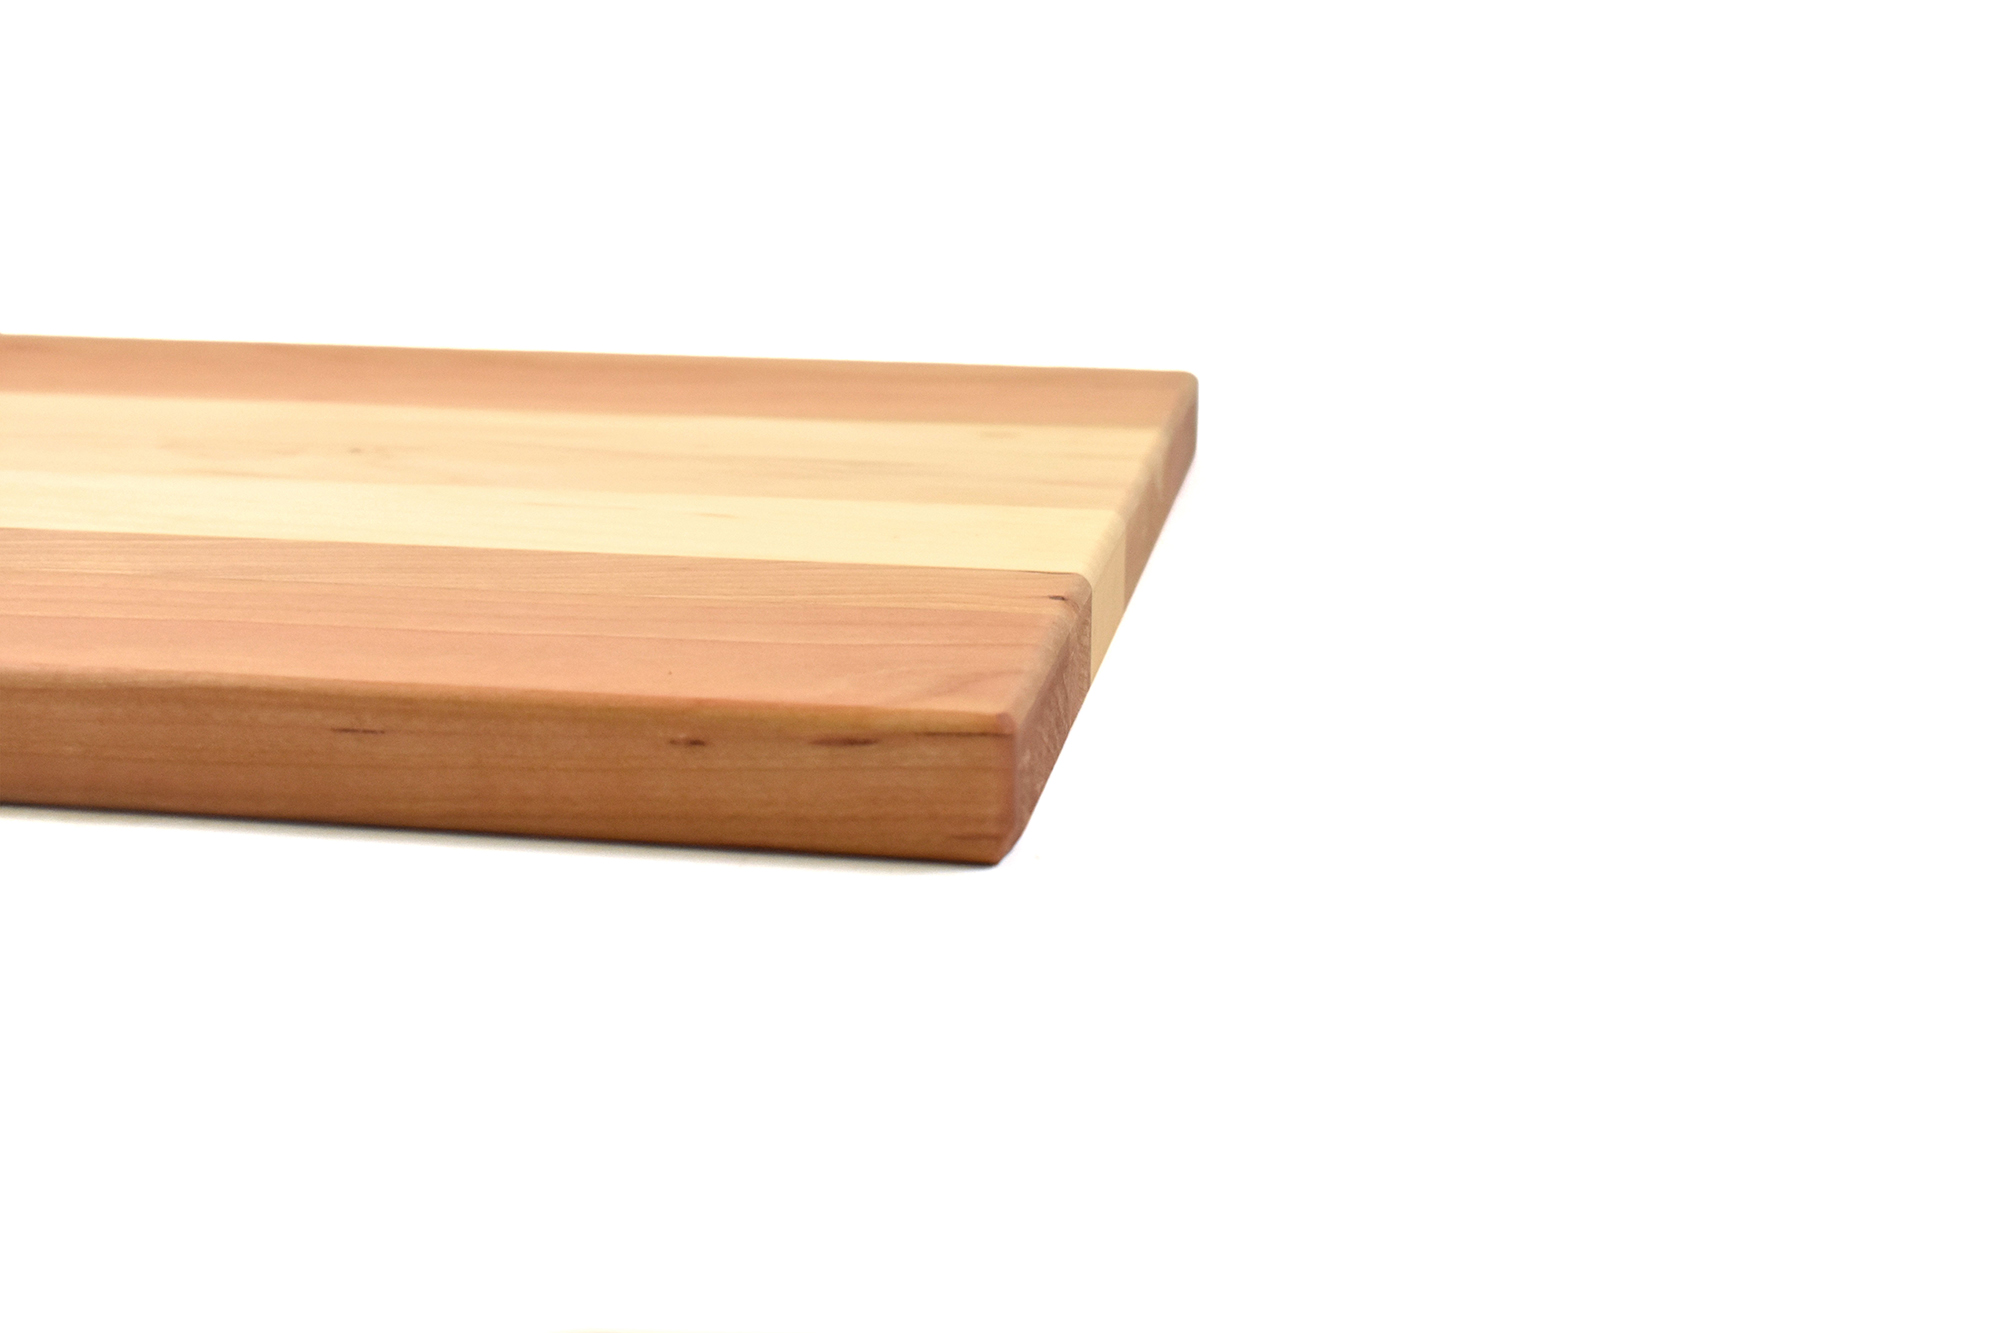 Multi wood species cutting board - Cherry wood ends with Maple wood in the middle